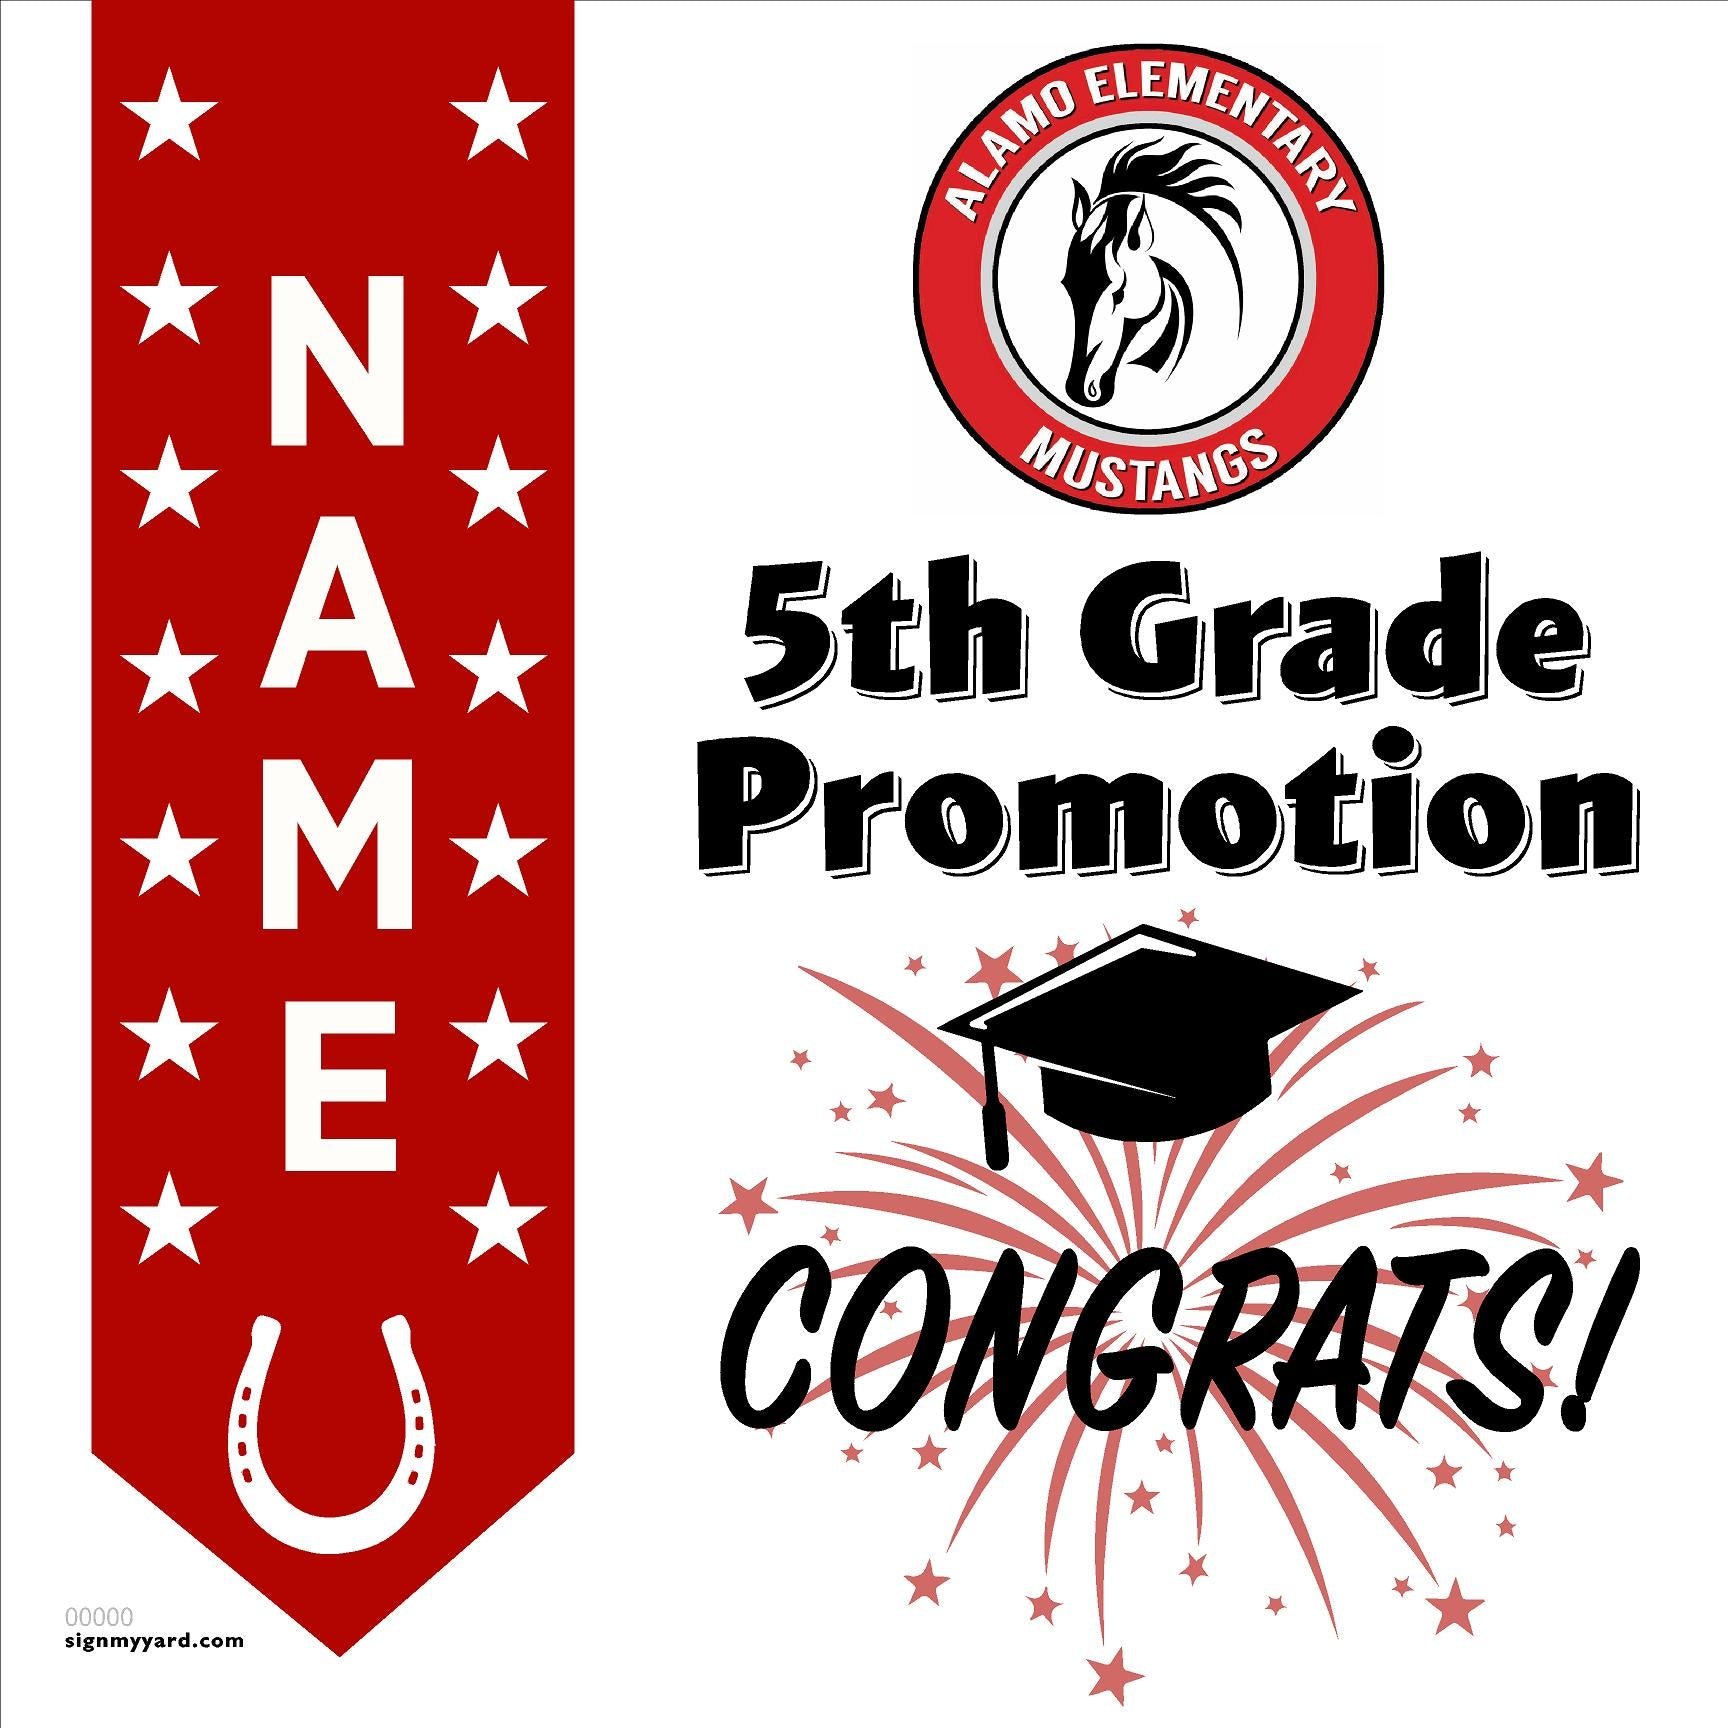 Alamo Elementary School 5th Grade Promotion 24x24 #shineon2027 Yard Sign (Option B)